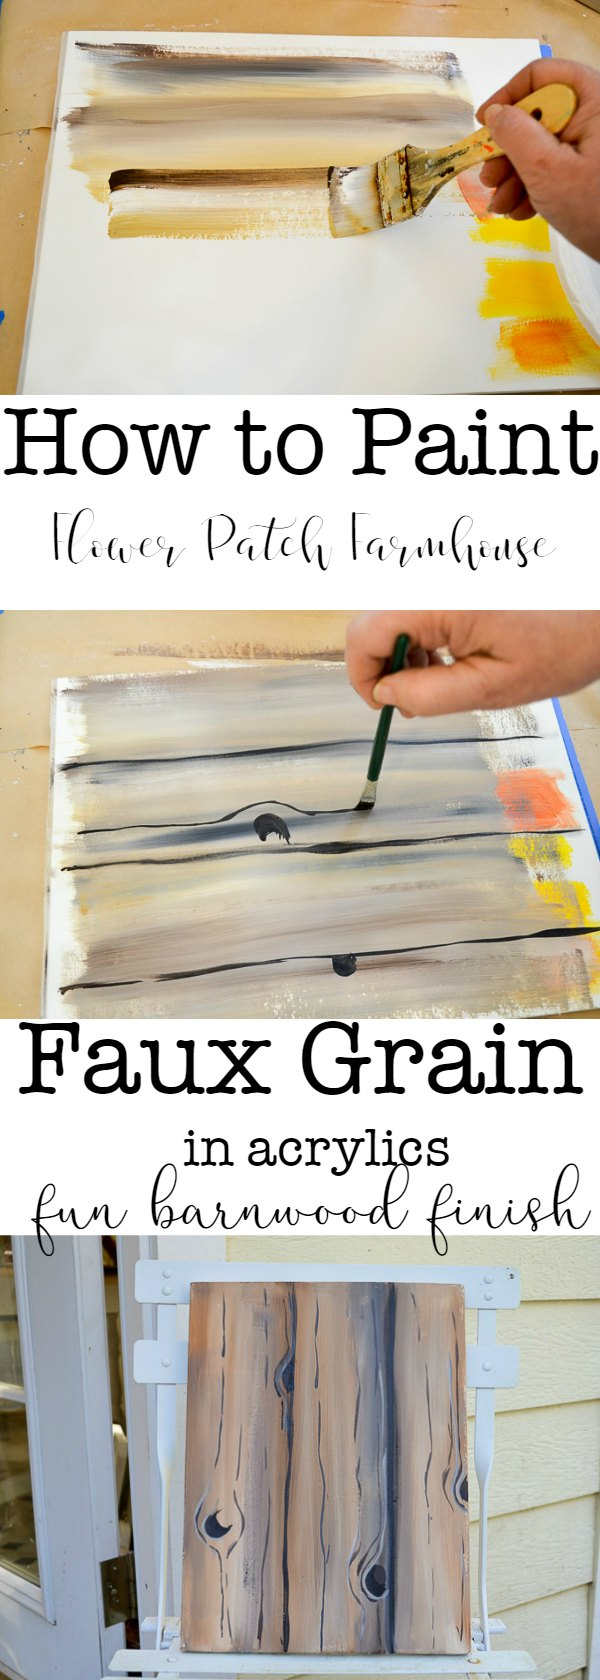 How to Paint faux wood grain in acrylics is easy and super fun.  Great for barn wood back grounds on all sorts of paintings or craft projects. Check out some of my other tutorials to see how I use it.